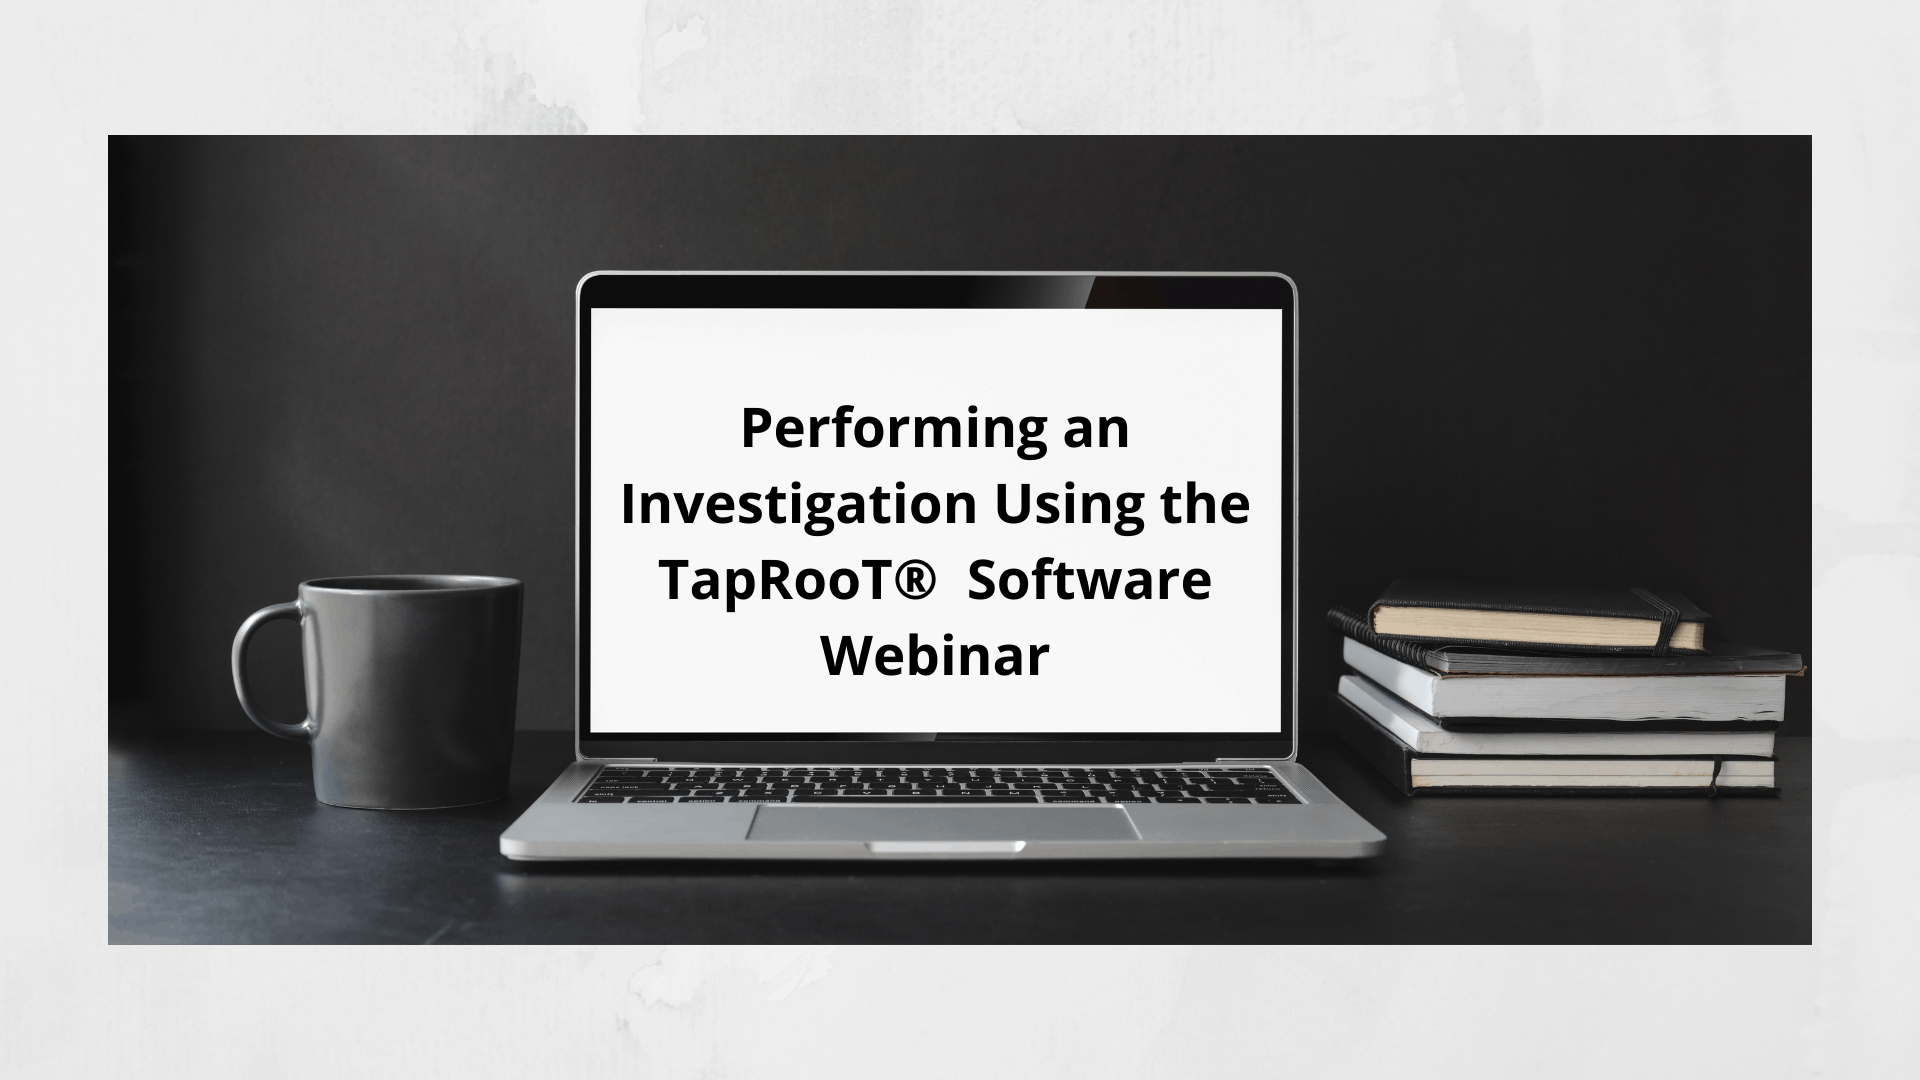 Performing an Investigation Using the TapRooT® Software Webinar